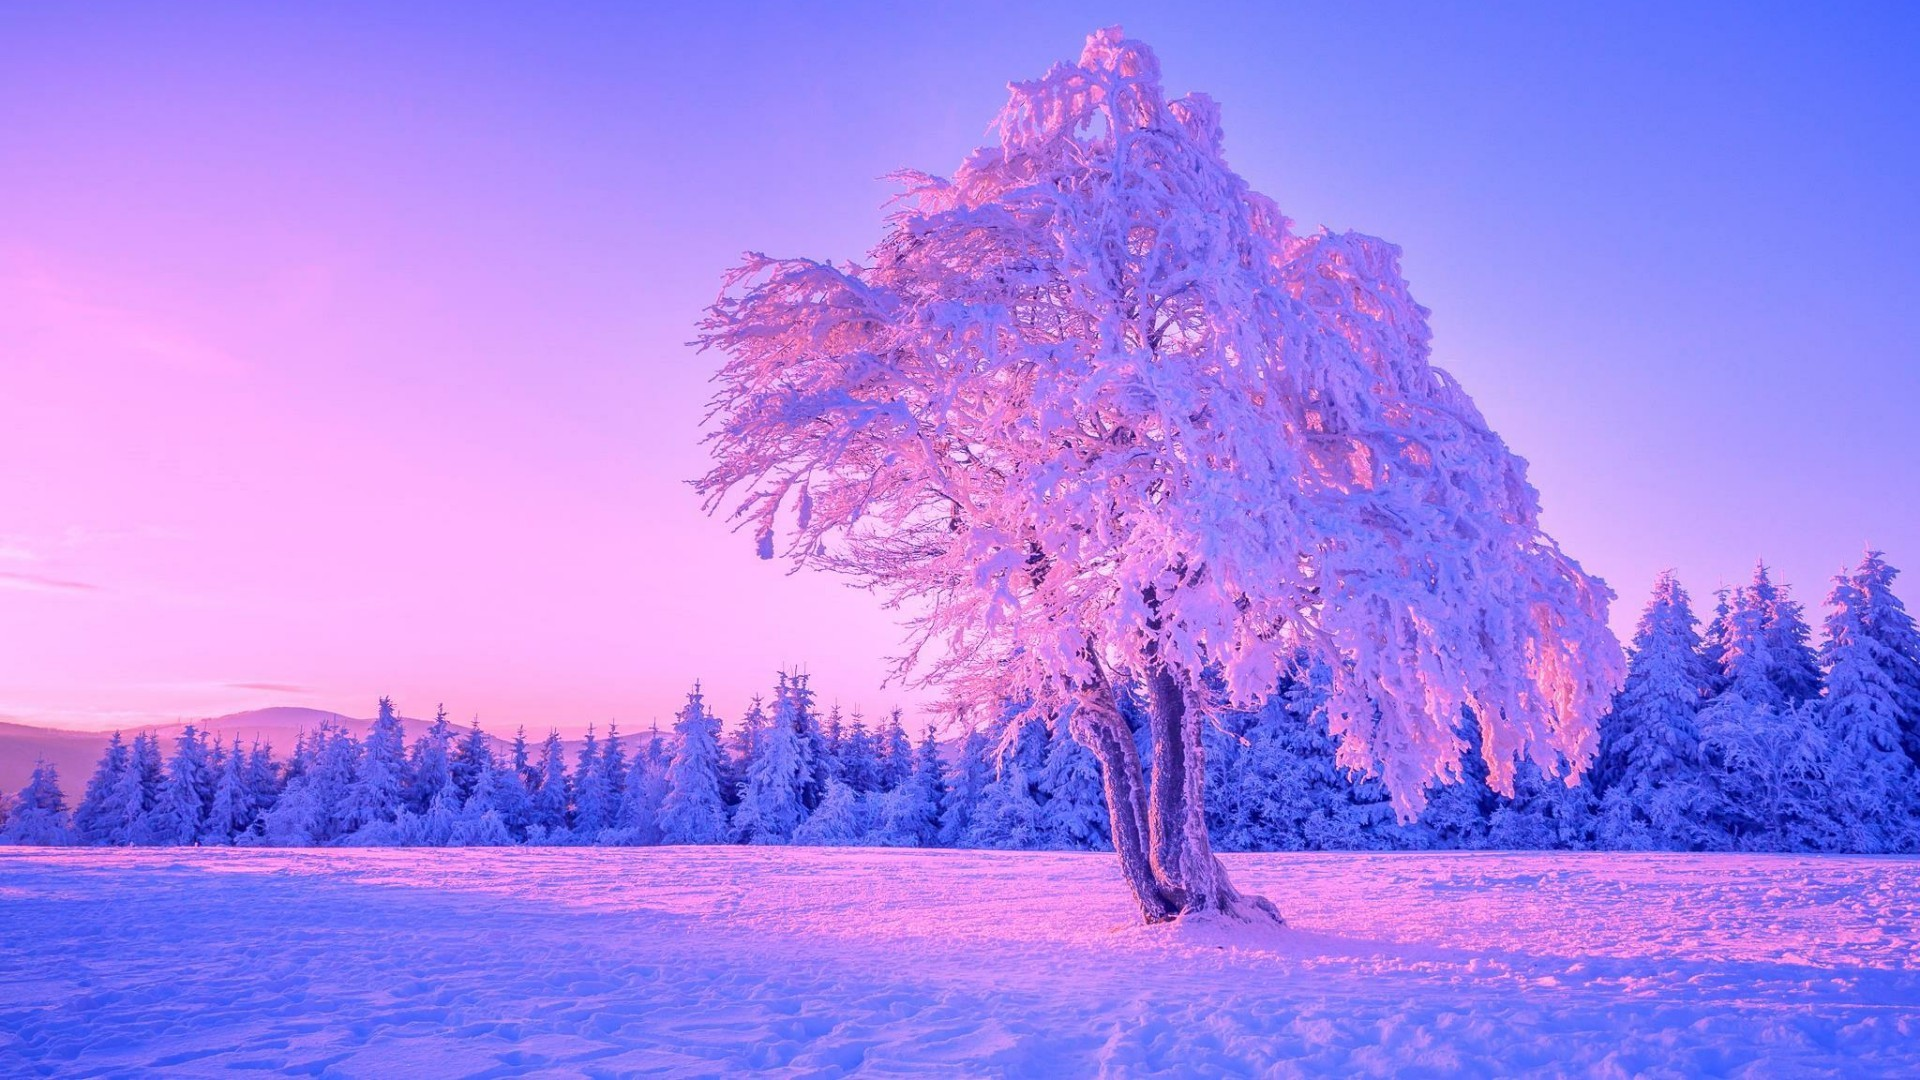 Res: 1920x1080, Frozen Lonely Tree Wallpaper | Wallpaper Studio 10 | Tens of thousands HD  and UltraHD wallpapers for Android, Windows and Xbox